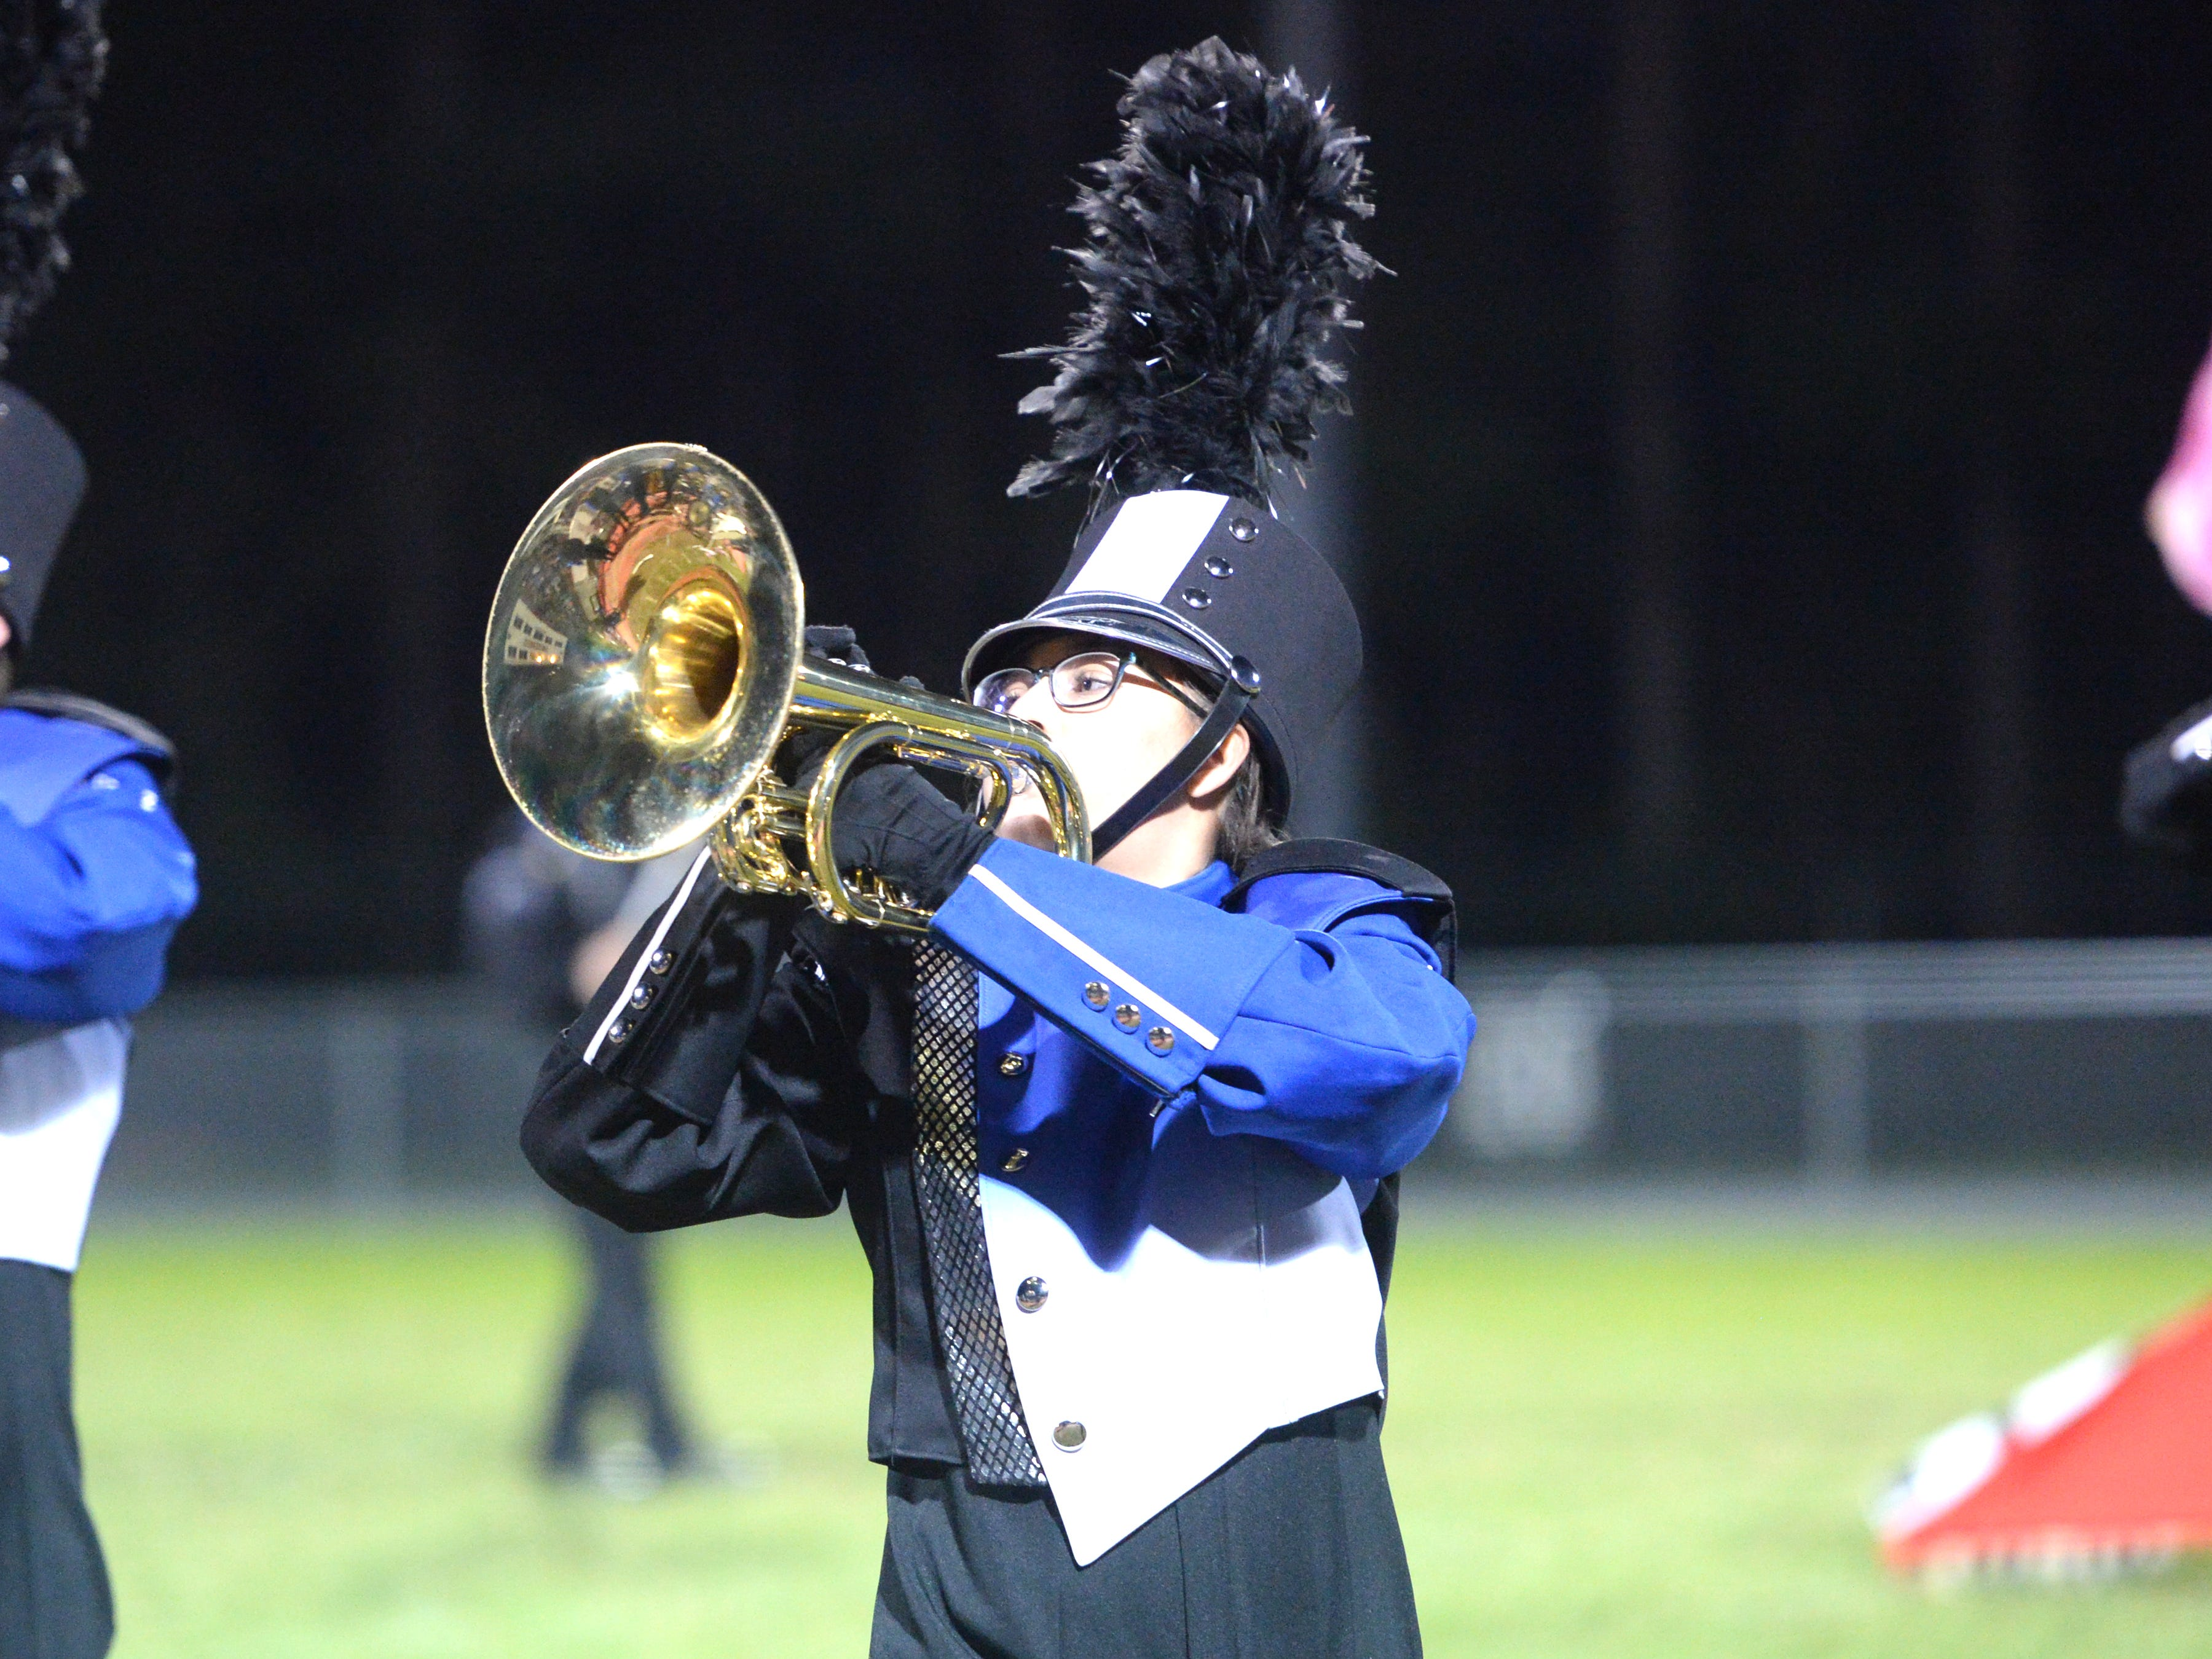 The Fort Defiance High School band performs during the Valley Showcase Tuesday at Riverheads.